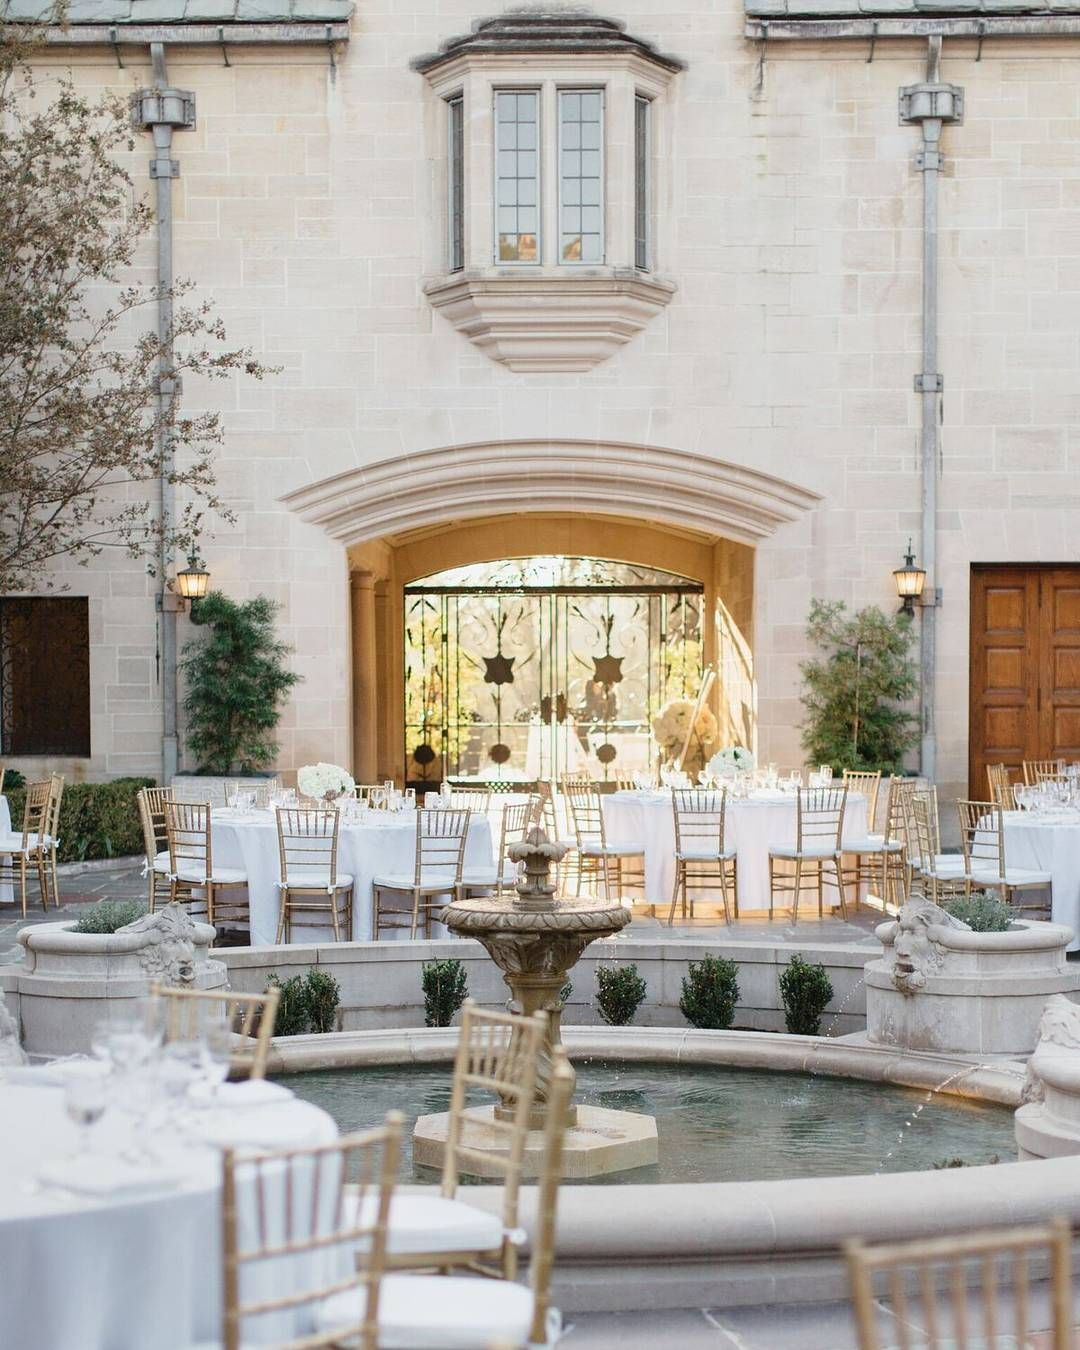 This white and gold courtyard reception used simple decor